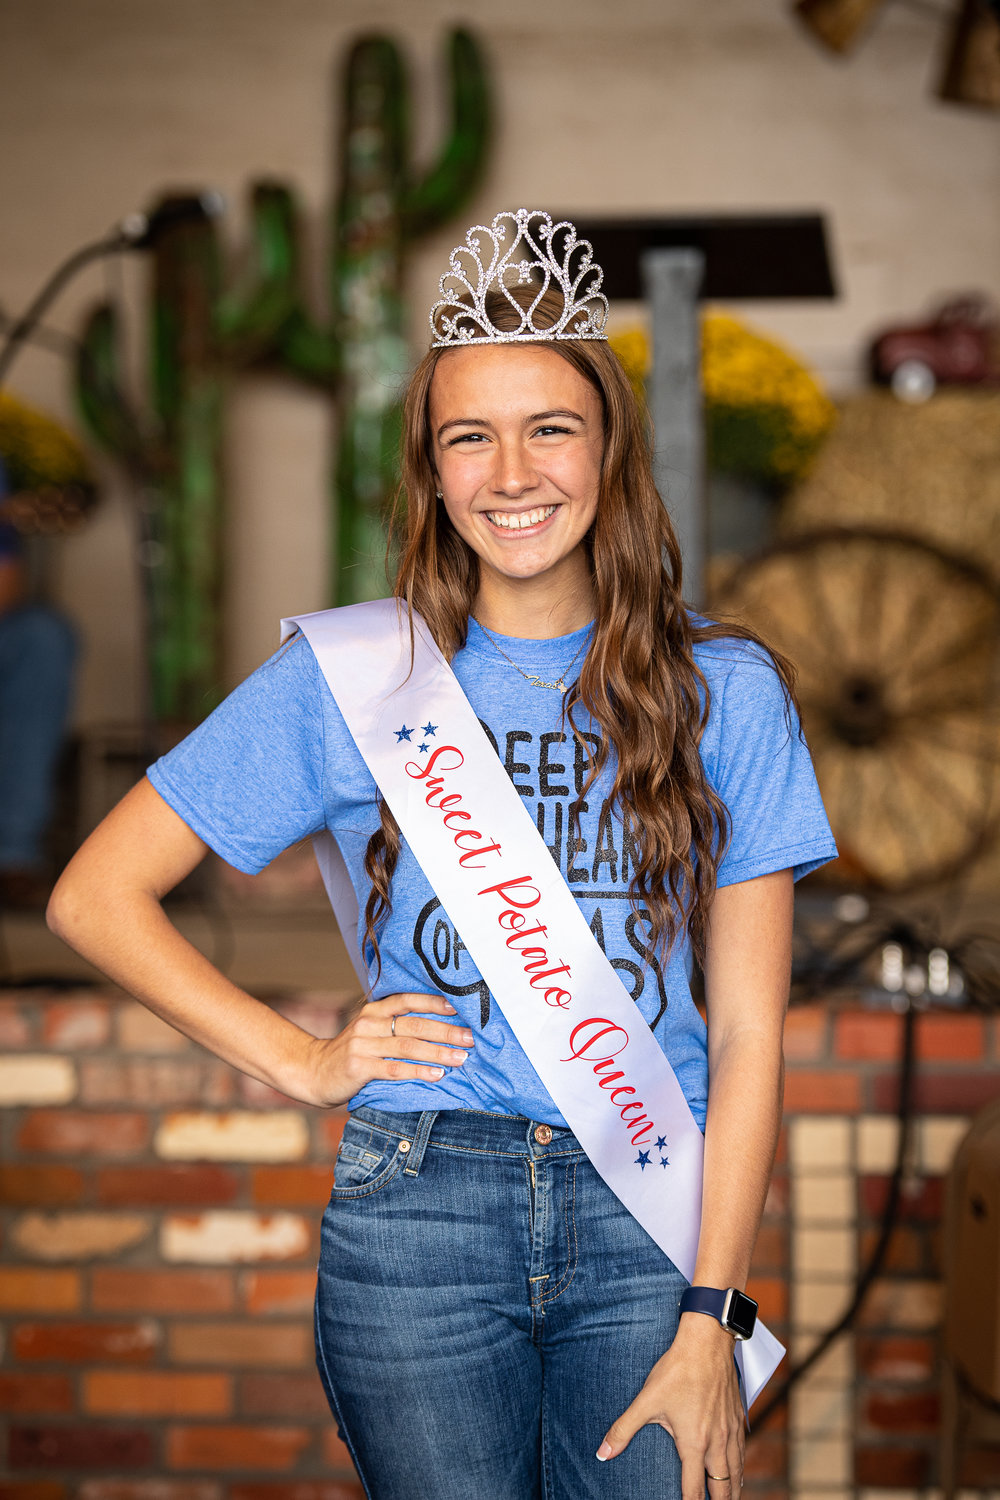 Justina Peterson, senior at Alba-Golden, was named the Sweet Potato Queen Saturday at the annual festival in Golden.